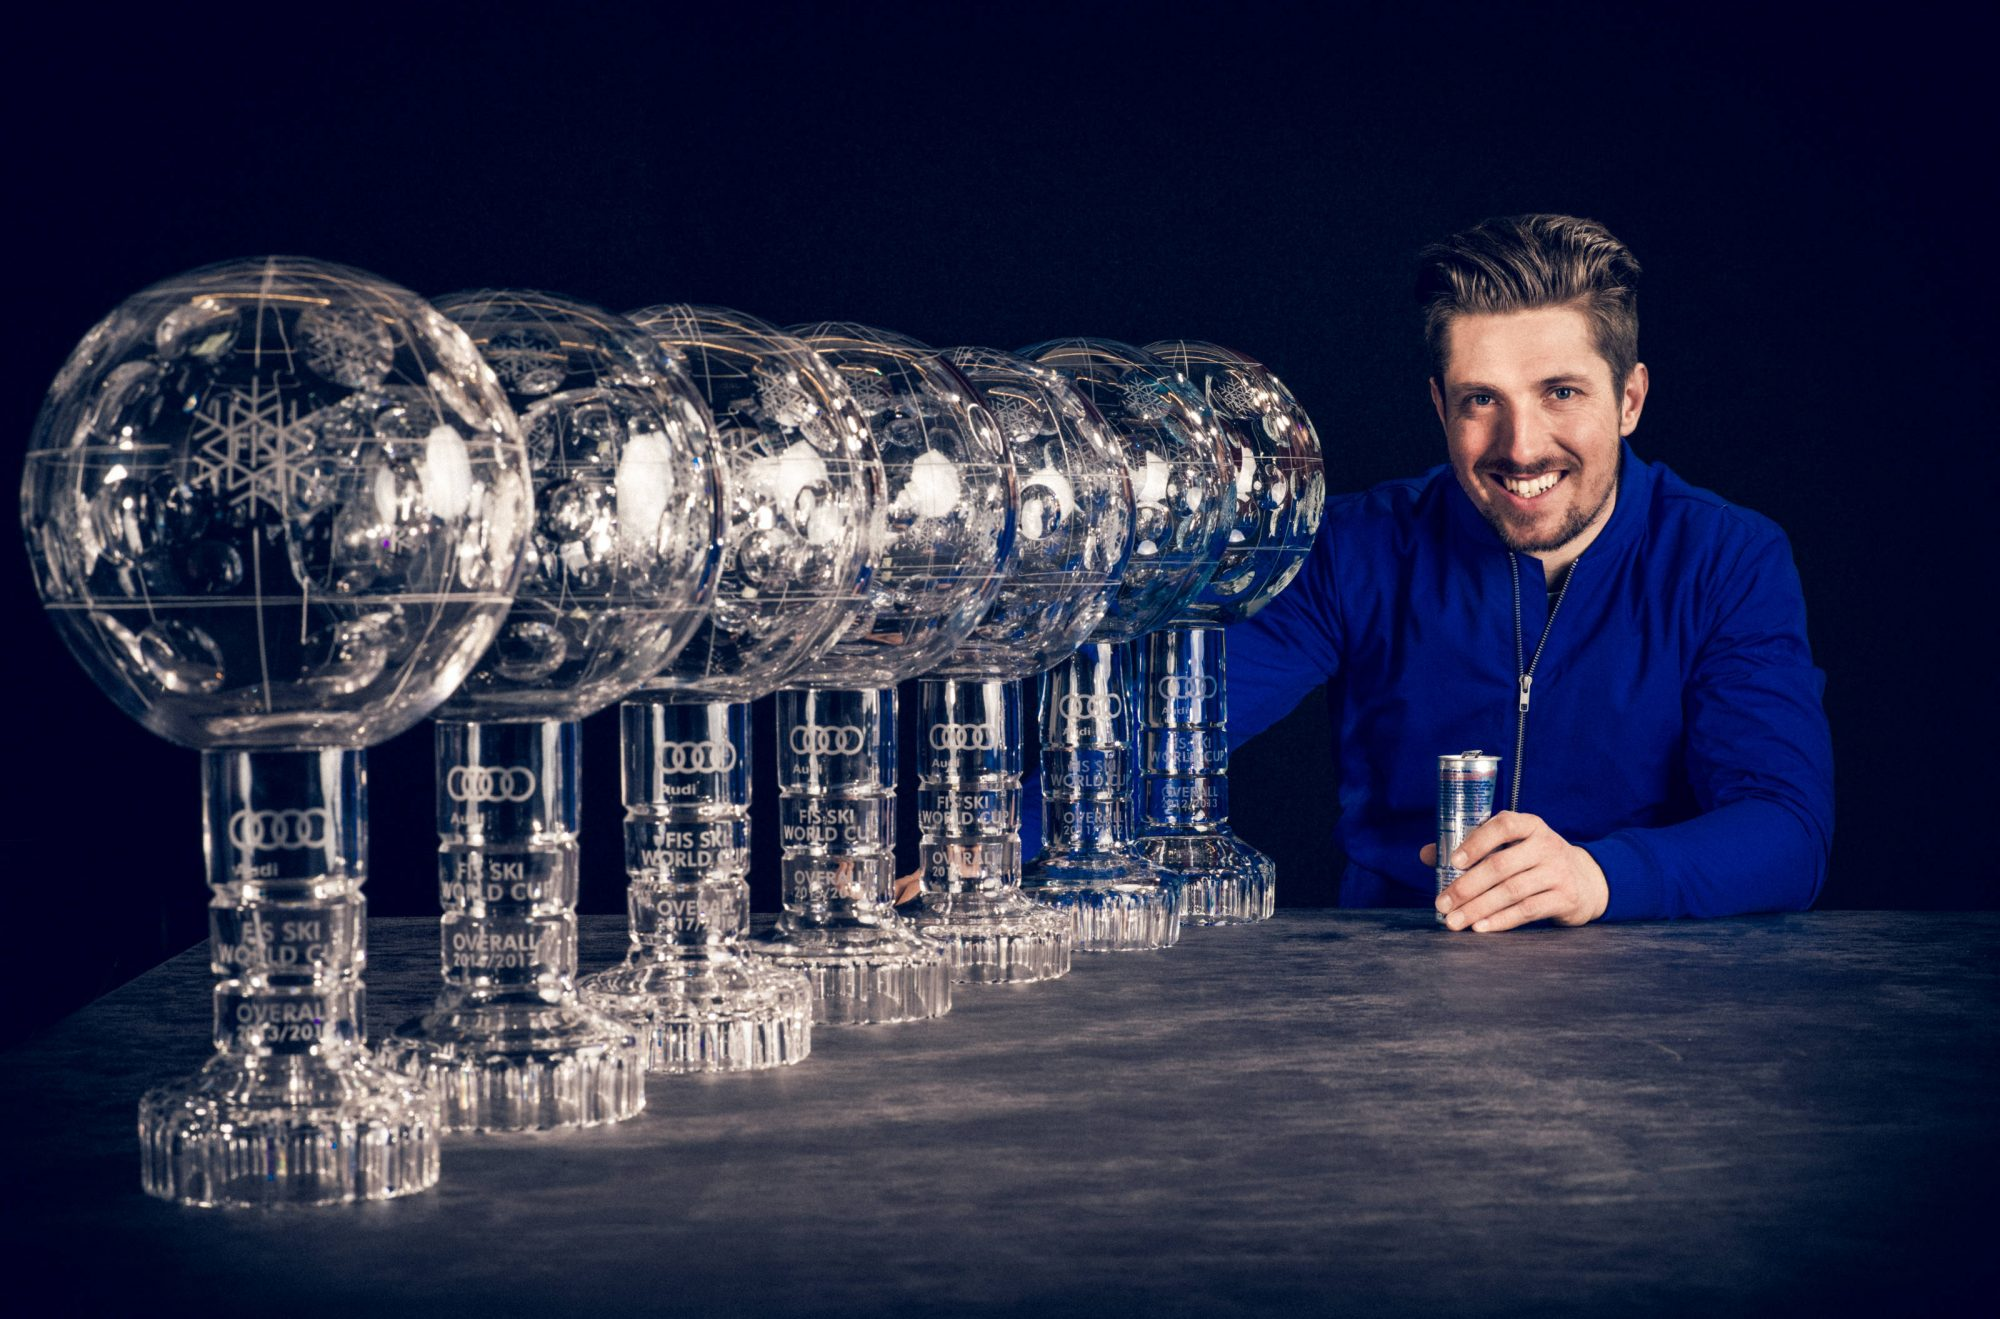 BILDSYMPHONIE / Red Bull Content Pool / Marcel Hirscher Red Bull